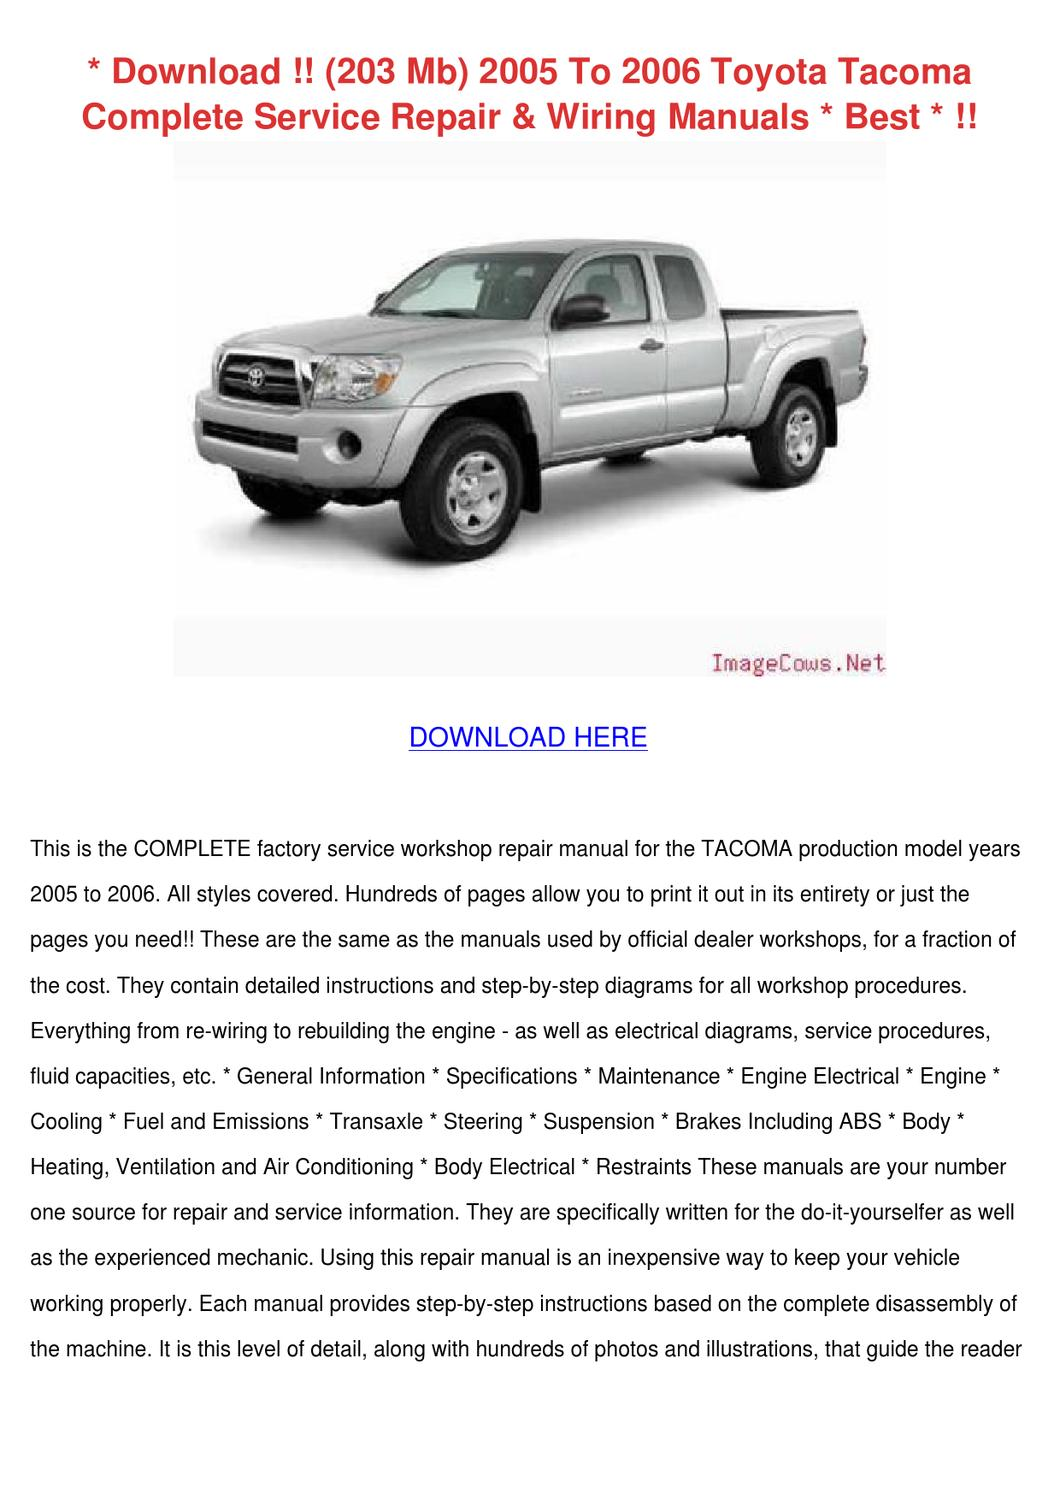 download 203 mb 2005 to 2006 toyota tacoma co by mathilde. Black Bedroom Furniture Sets. Home Design Ideas